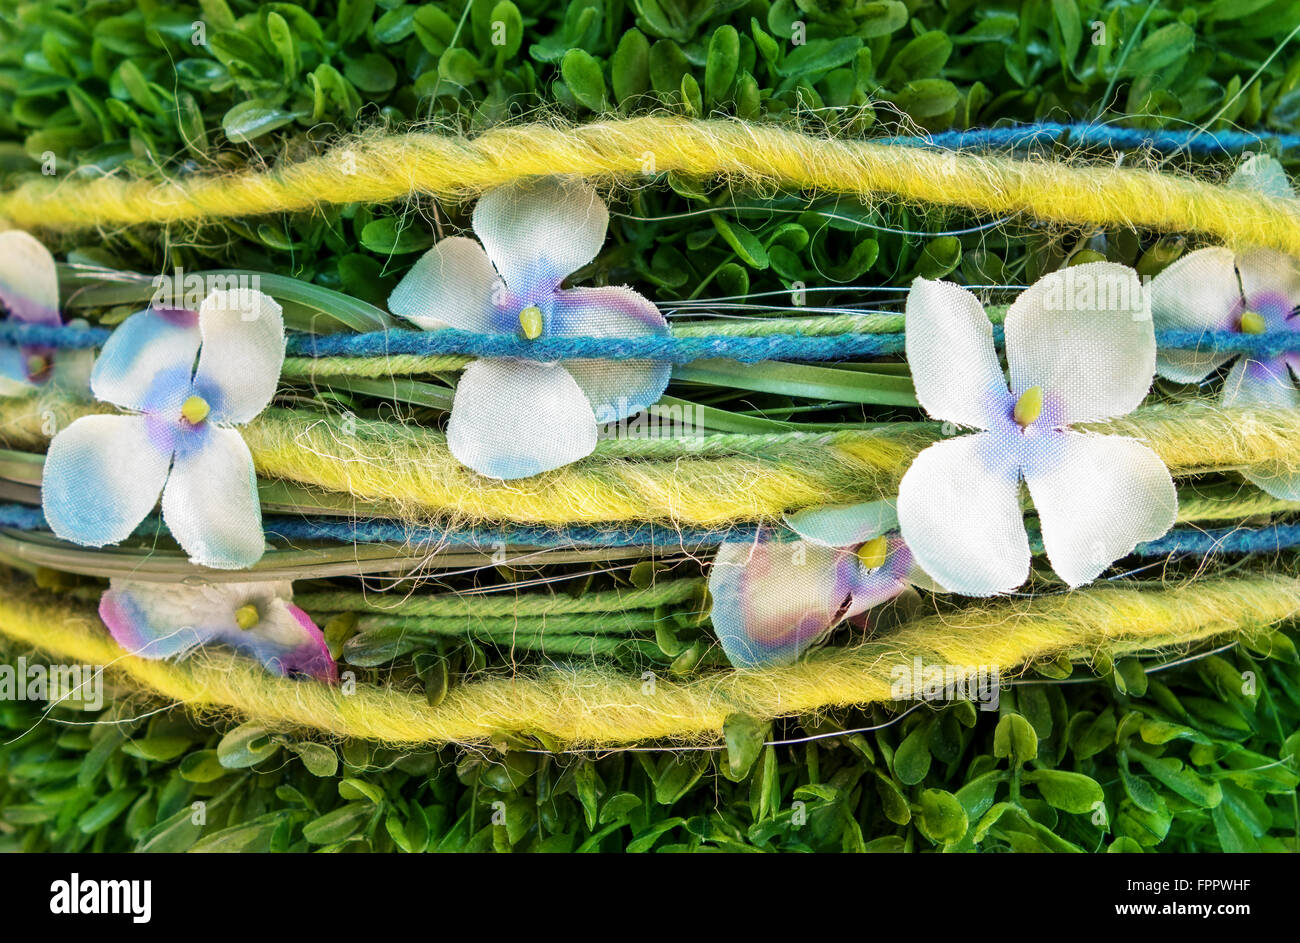 Decoration of fabric flowers and wool threads on an artificial green bush in close-up - Stock Image